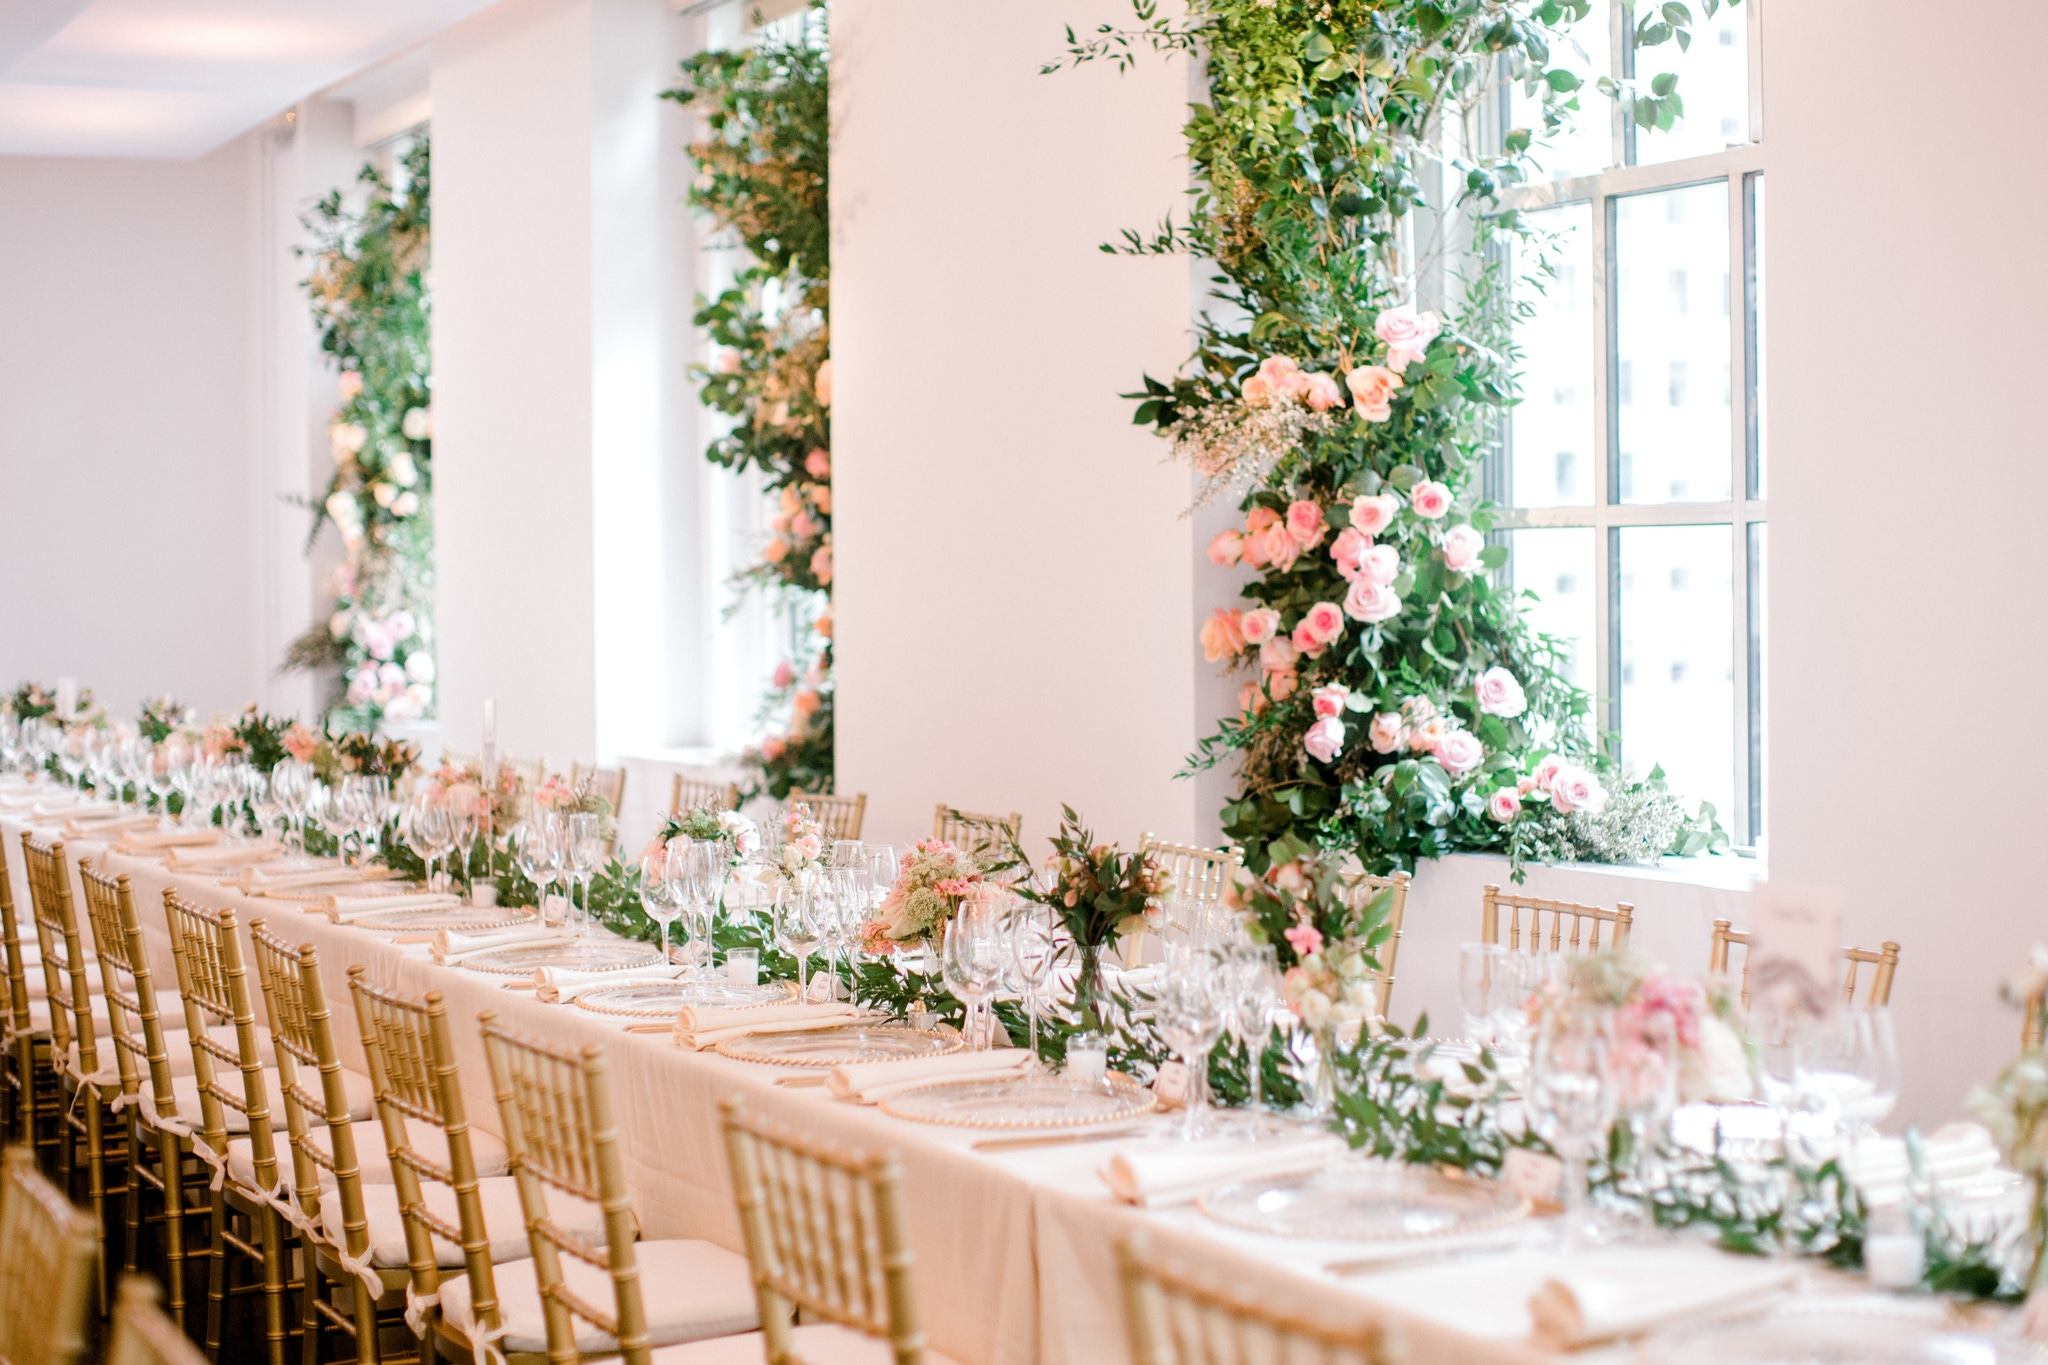 Long table with greenery accents